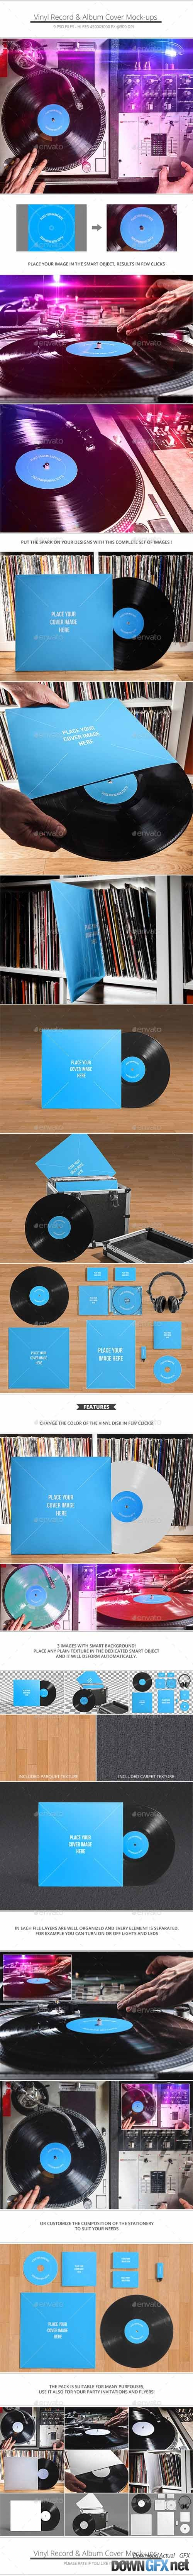 Vinyl Record & Album Cover Mock-ups - Party Pack 10310707